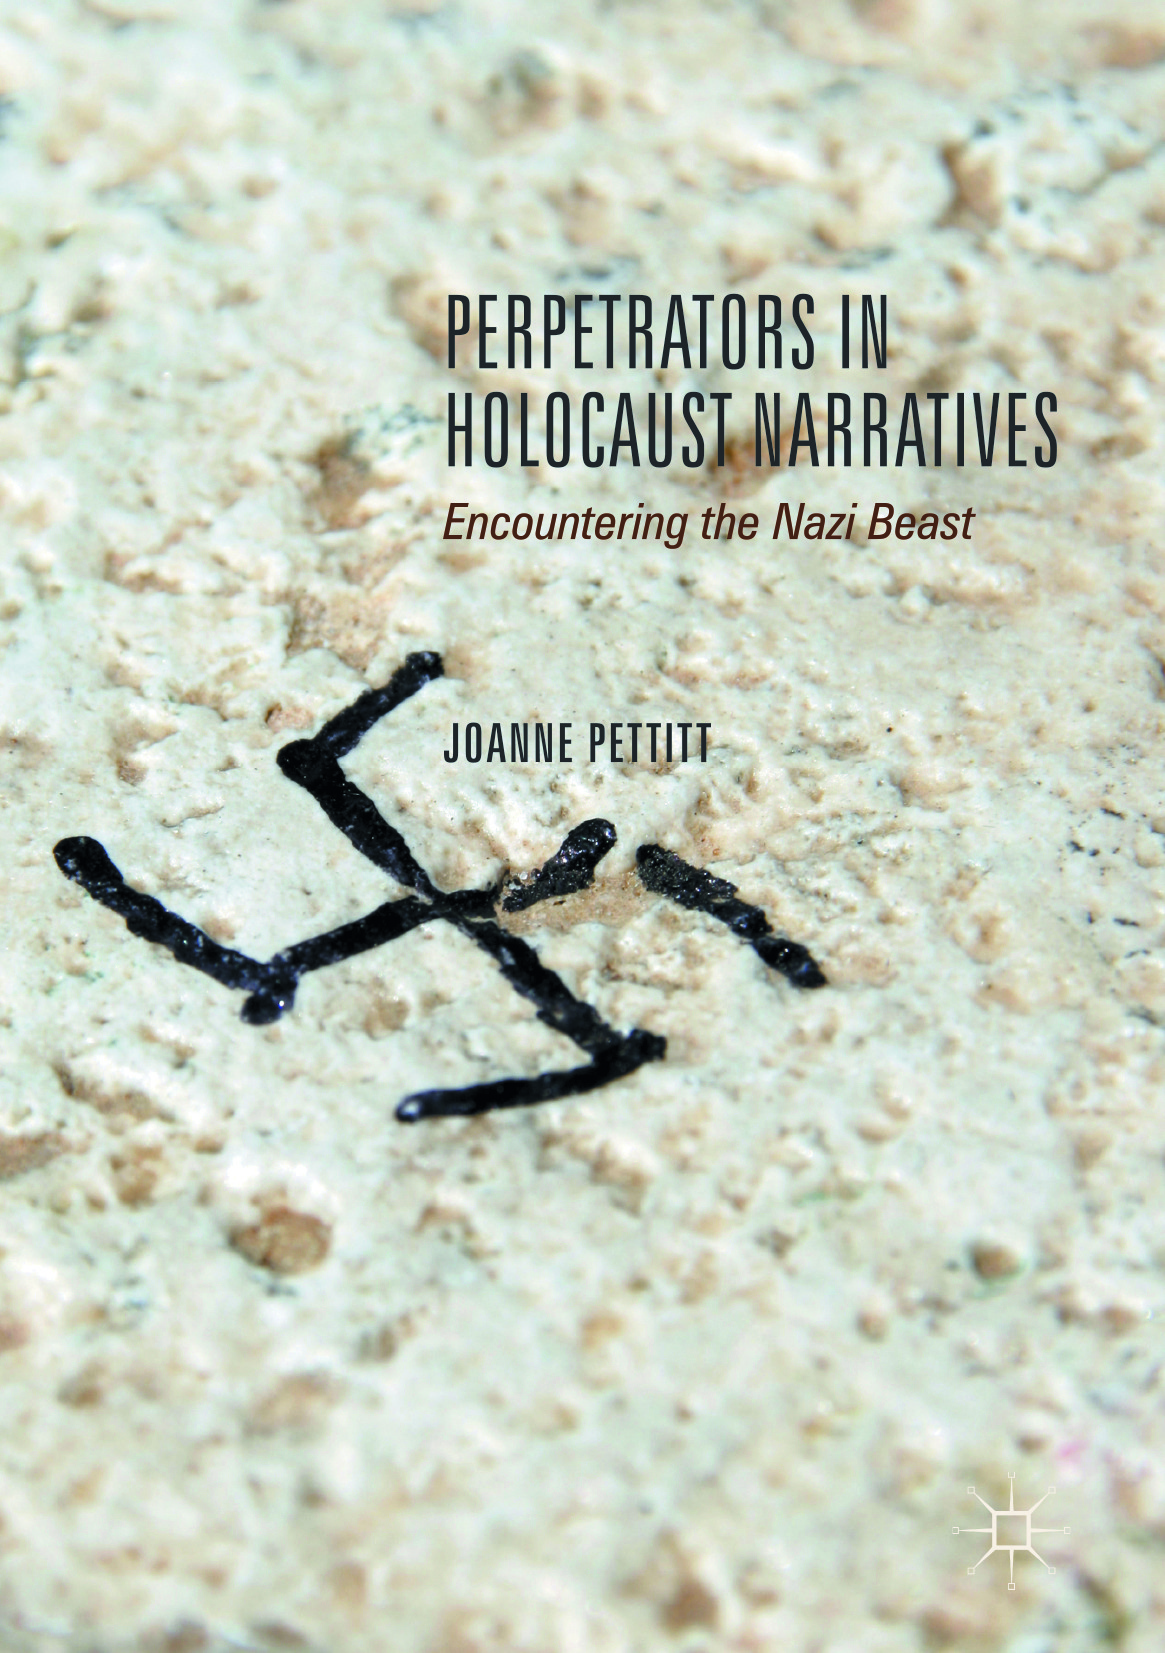 Pettitt, Joanne - Perpetrators in Holocaust Narratives, ebook